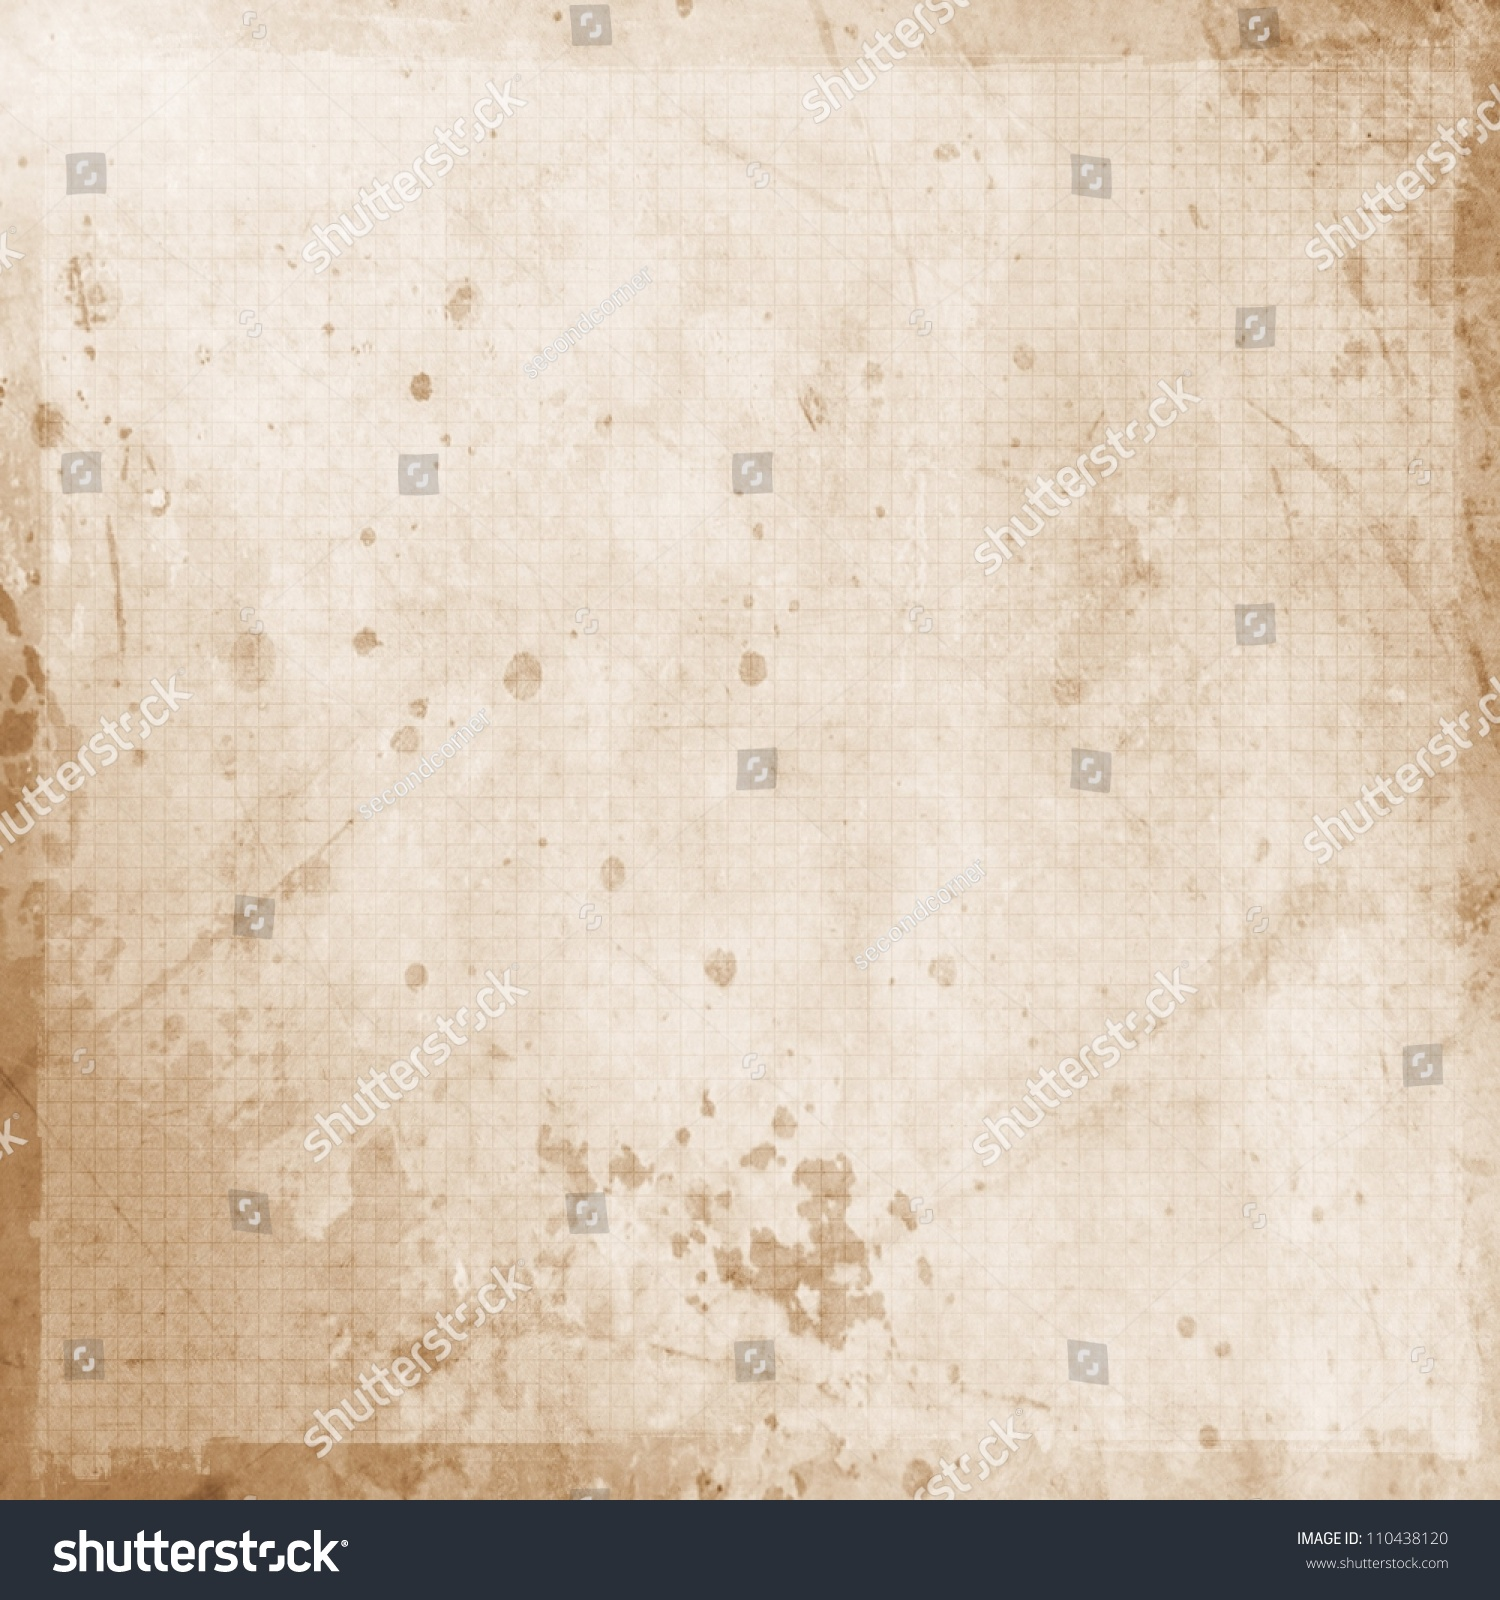 Light Brown Grunge Background Paper Texture Stock Photo ...